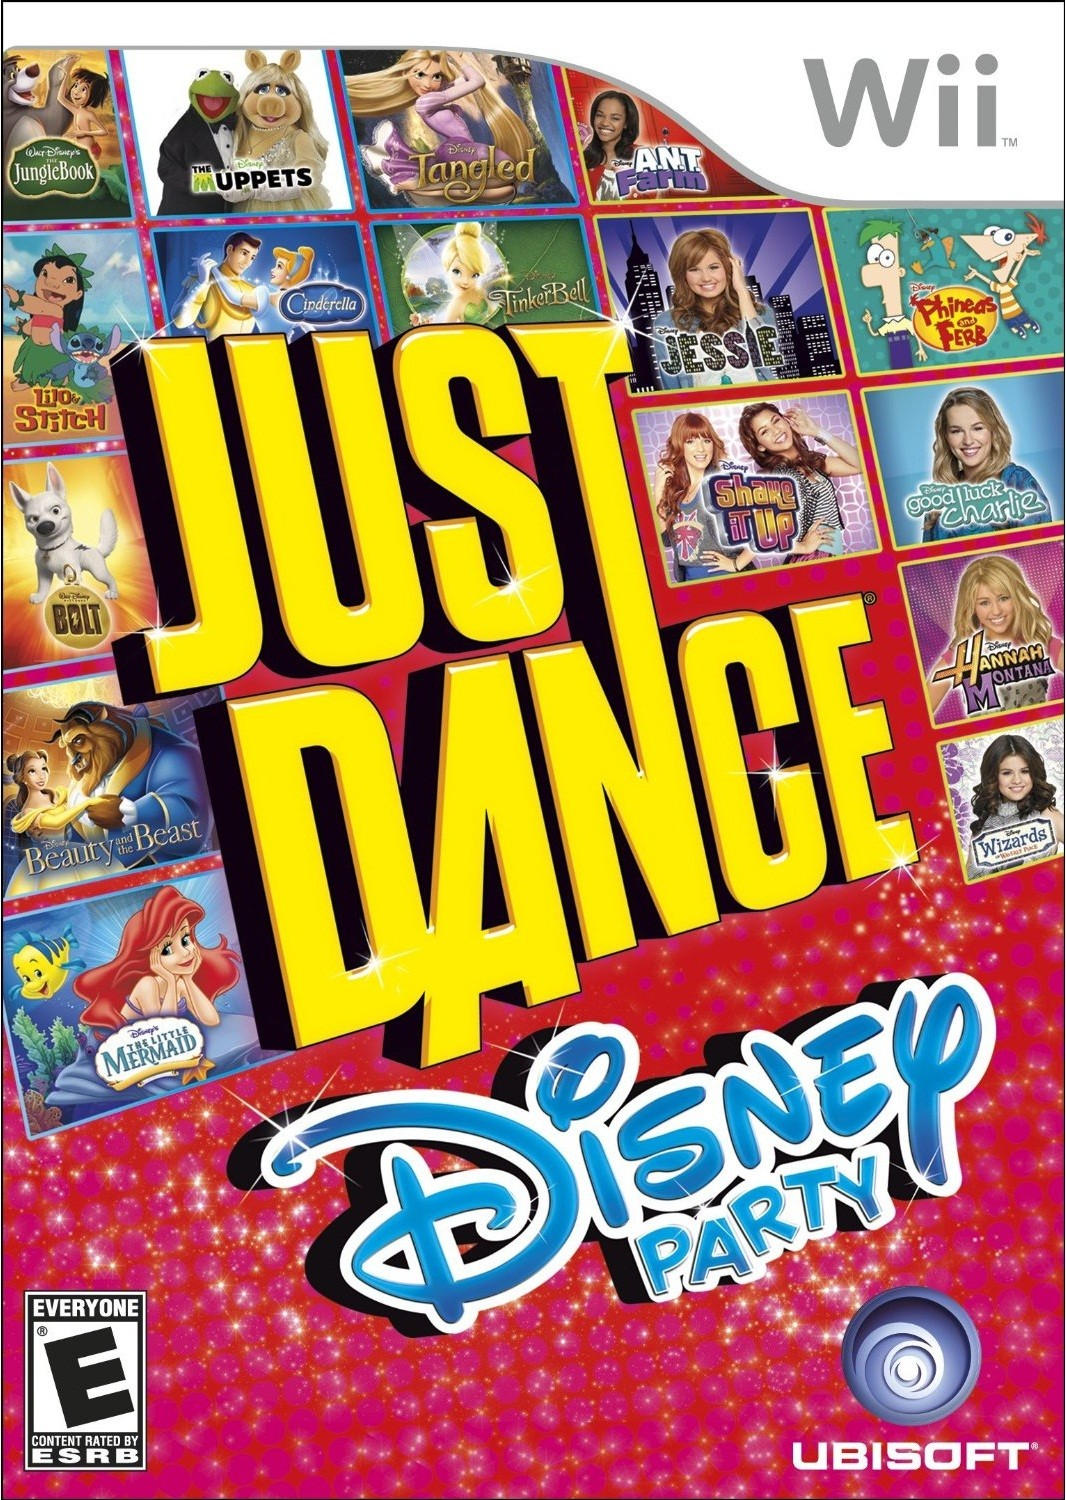 Just Dance Disney Party: Disney Favorites and Fun for EVERYONE! #JDDisney